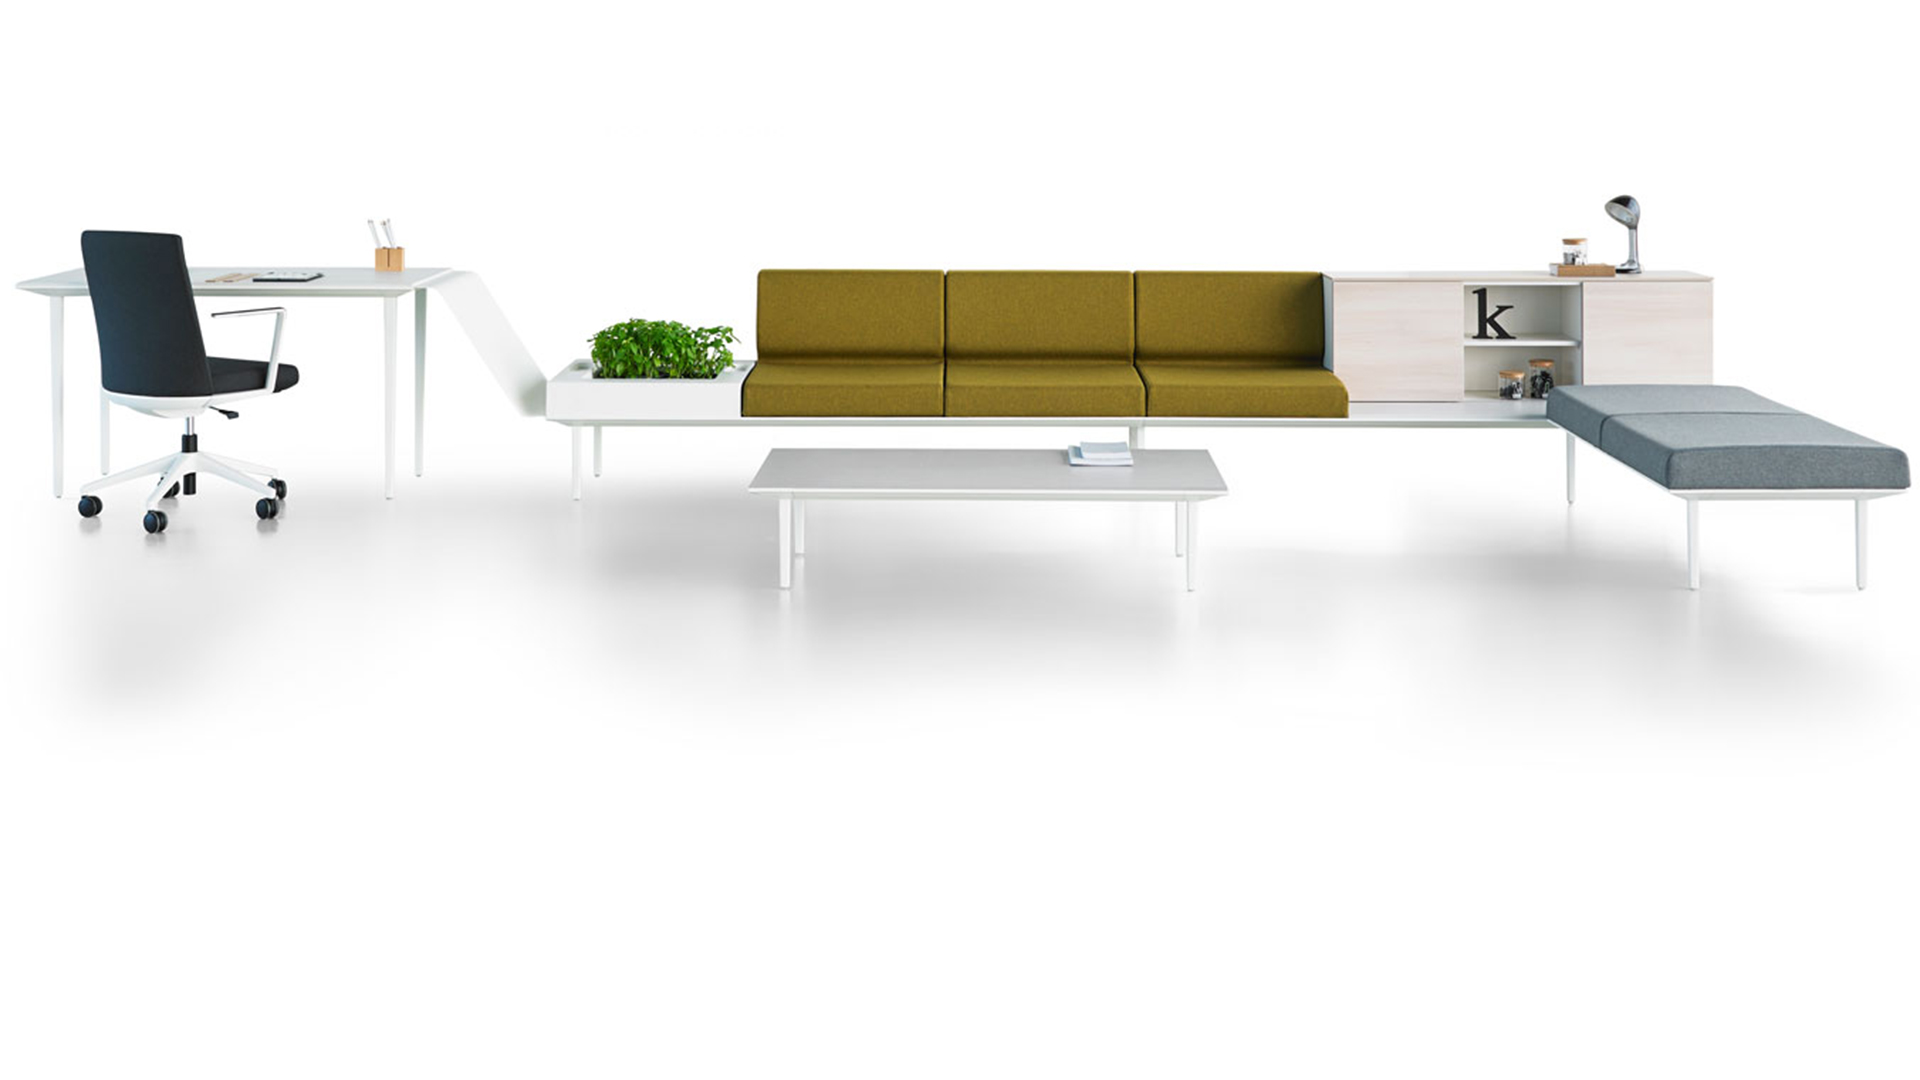 soft-seating-longo-11_crop_1400_775